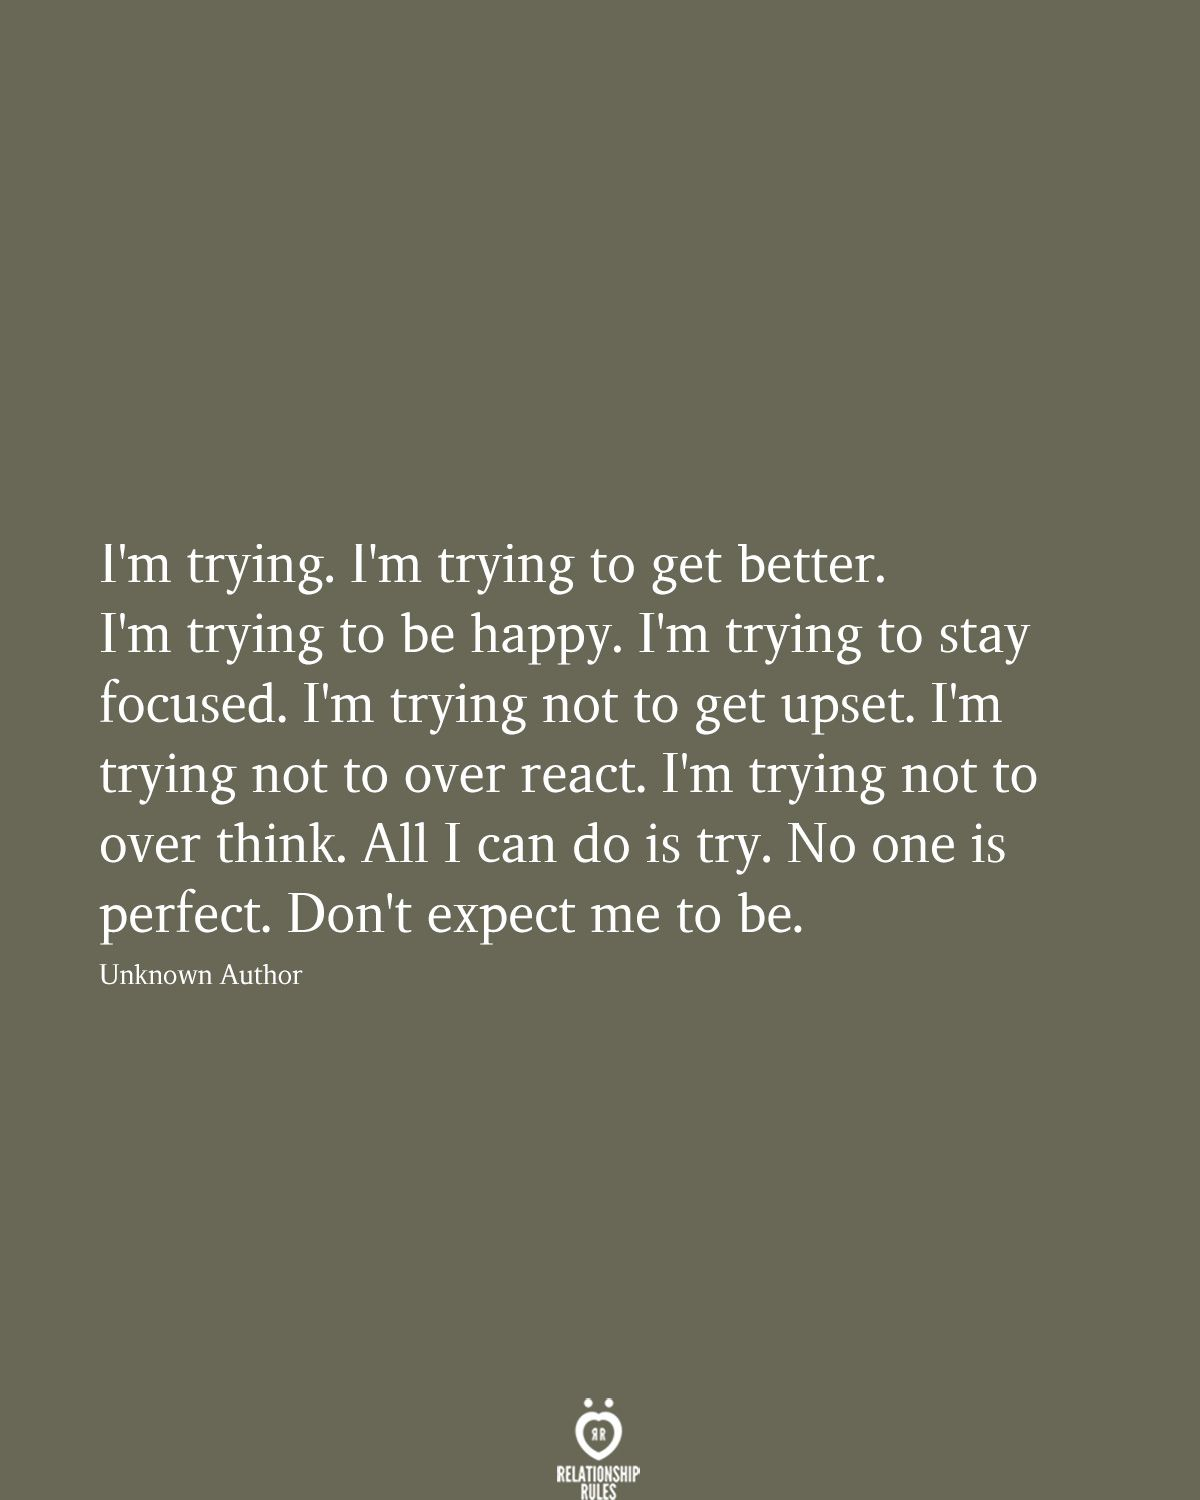 I'm trying. I'm trying to get better